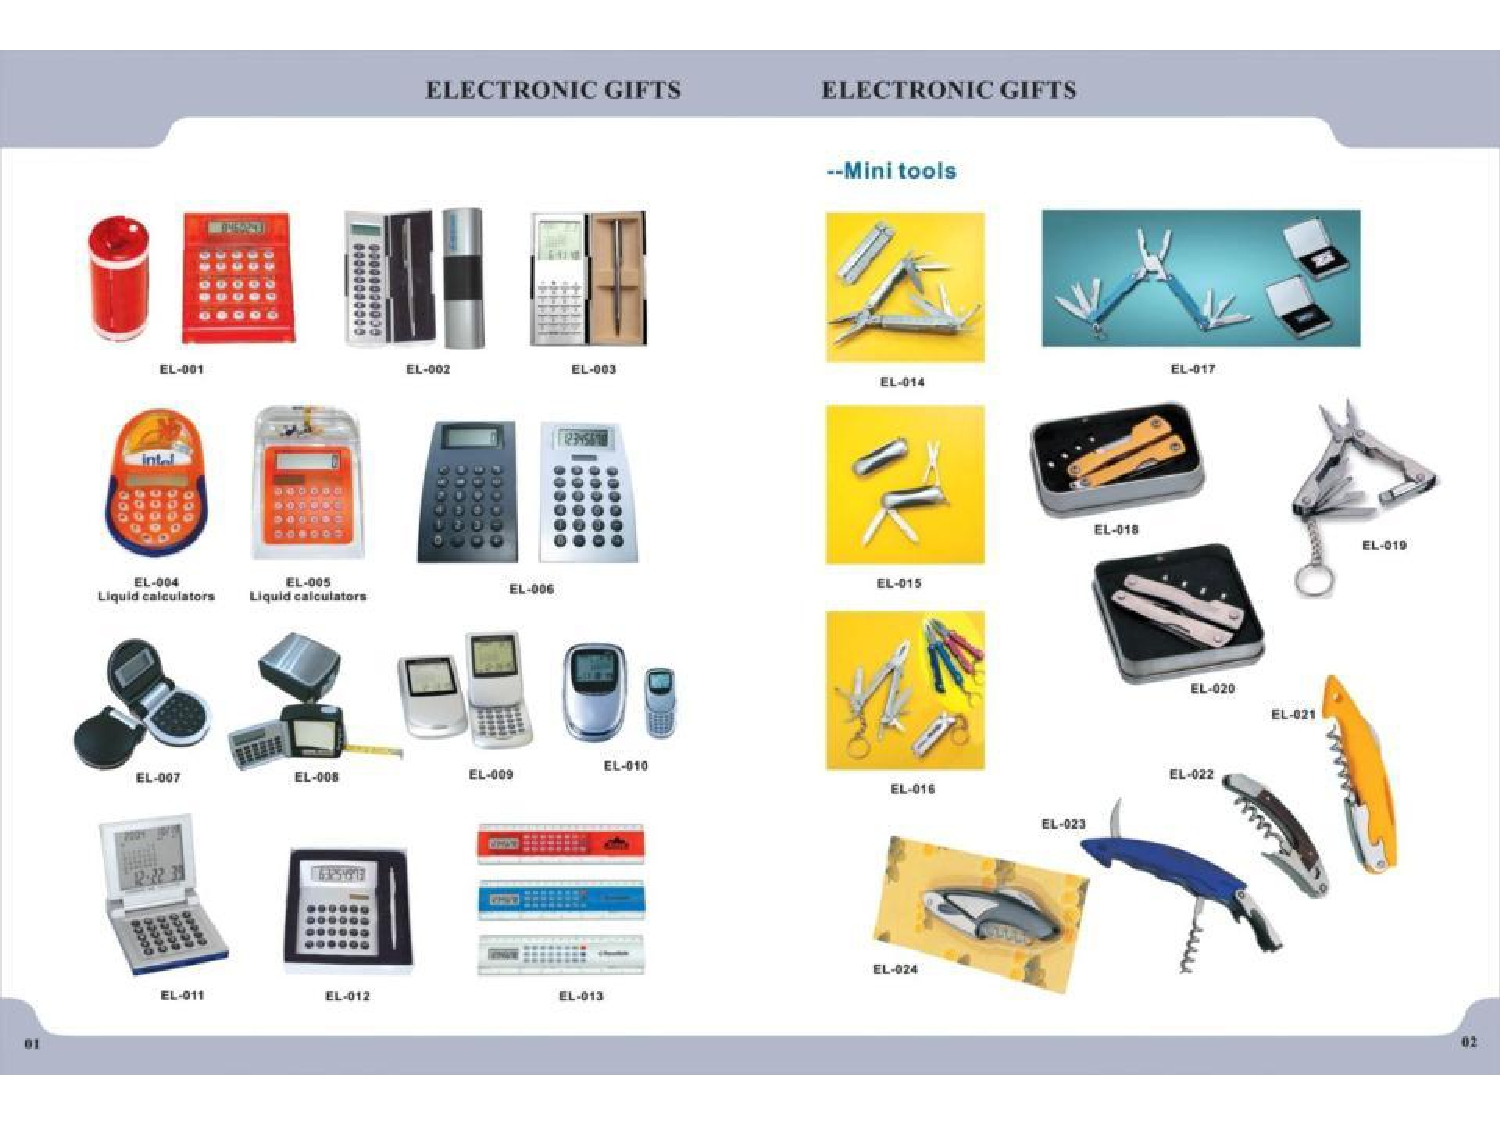 Business Gifts by Karam Advertising: Electronics and Tools Catalogue